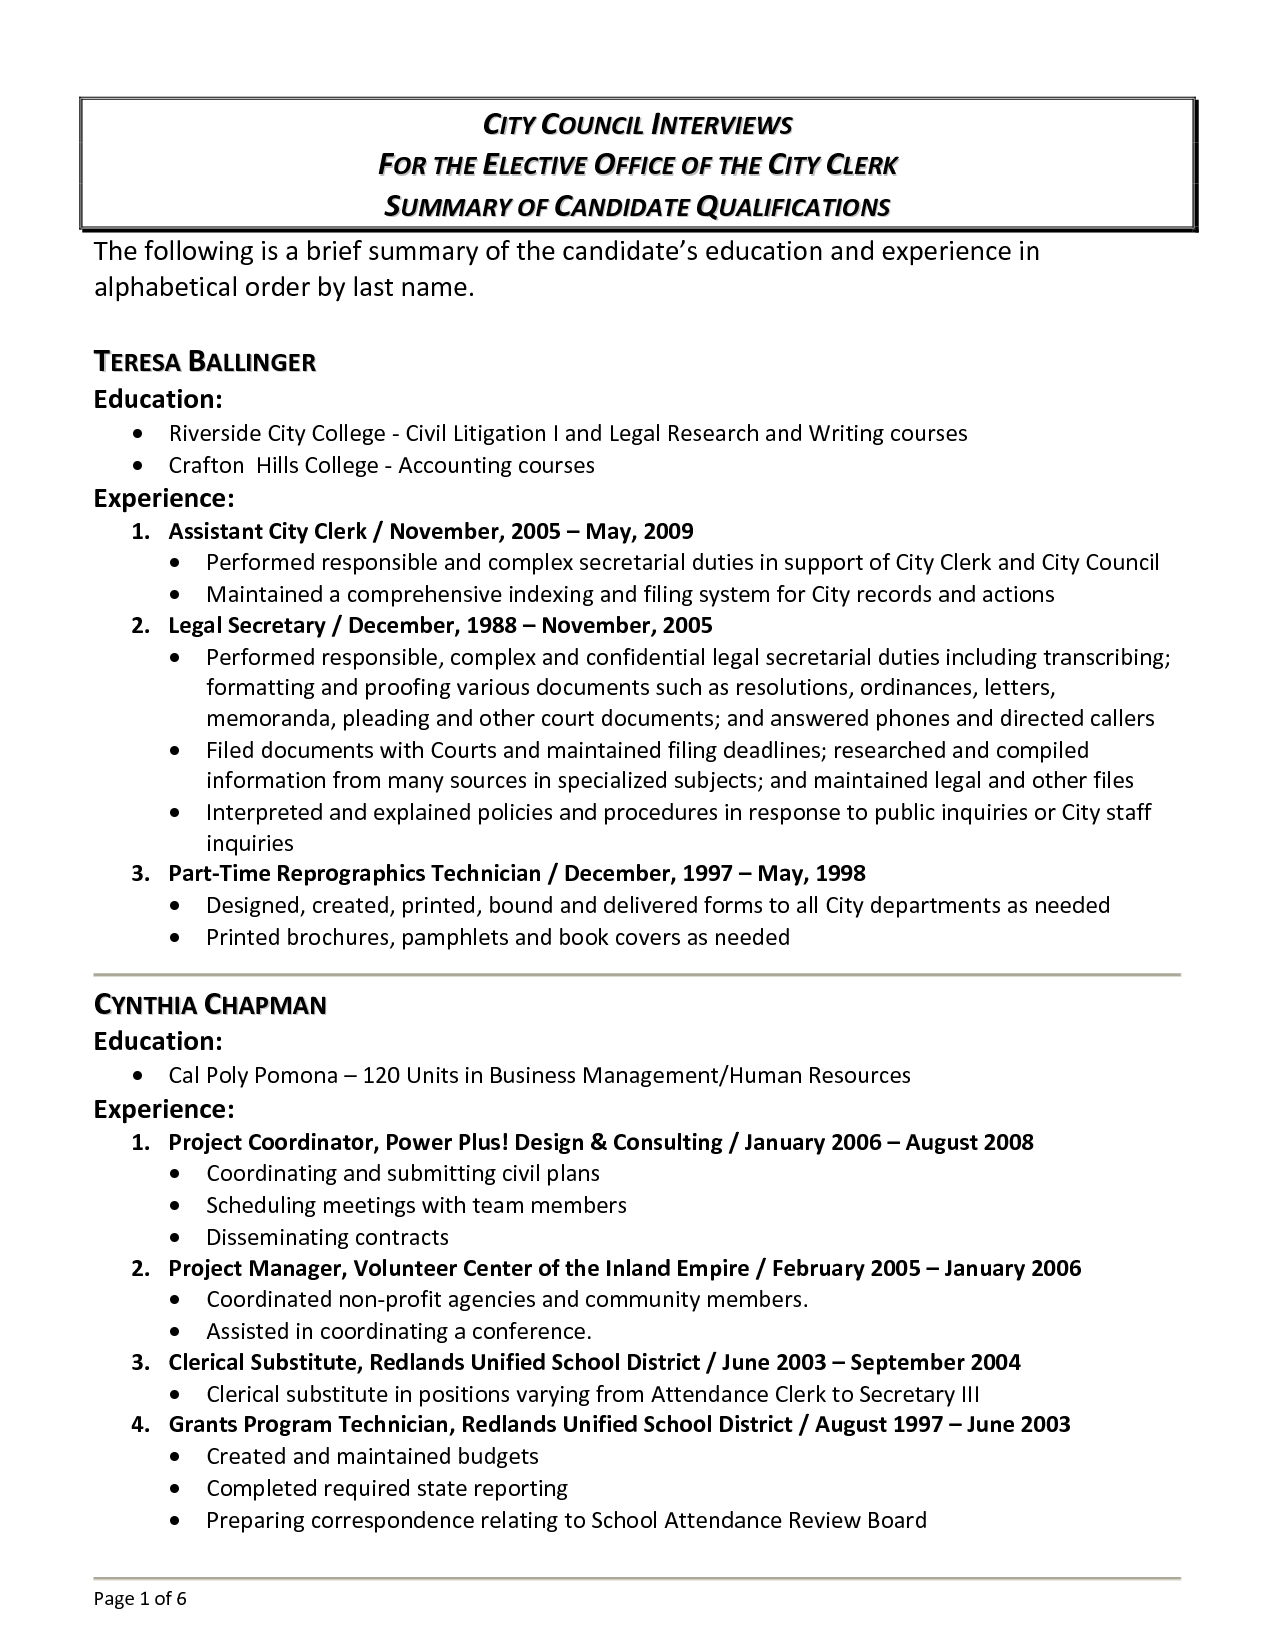 resume Summary Of Qualifications On A Resume qualifications on resume ninja turtletechrepairs co resume